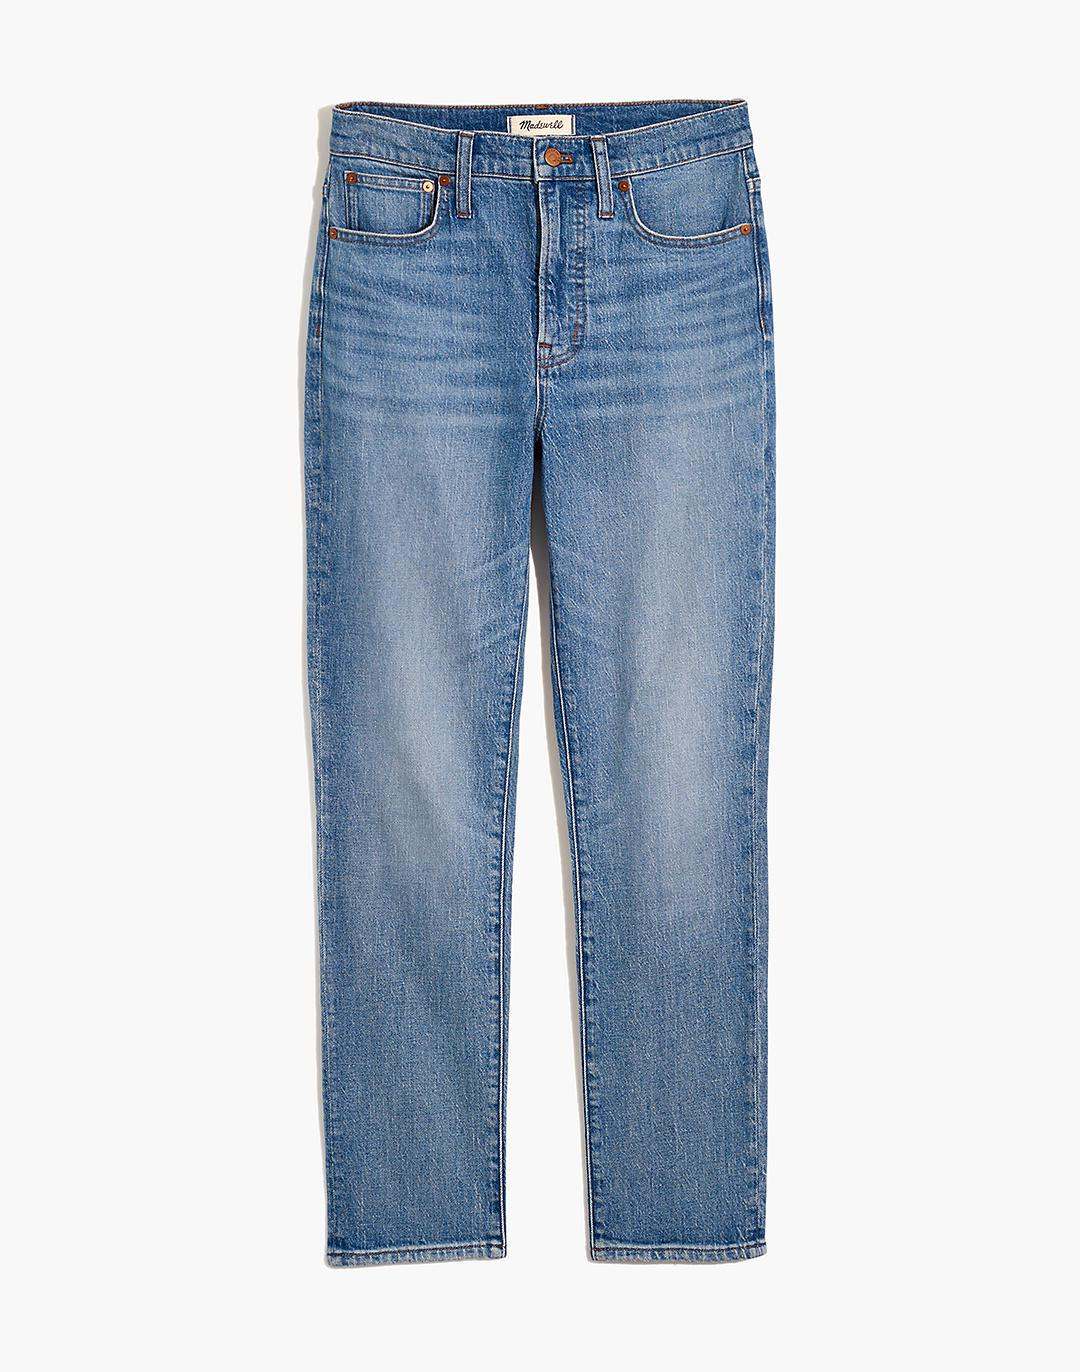 The Tall Perfect Vintage Crop Jean in Clymer Wash 3